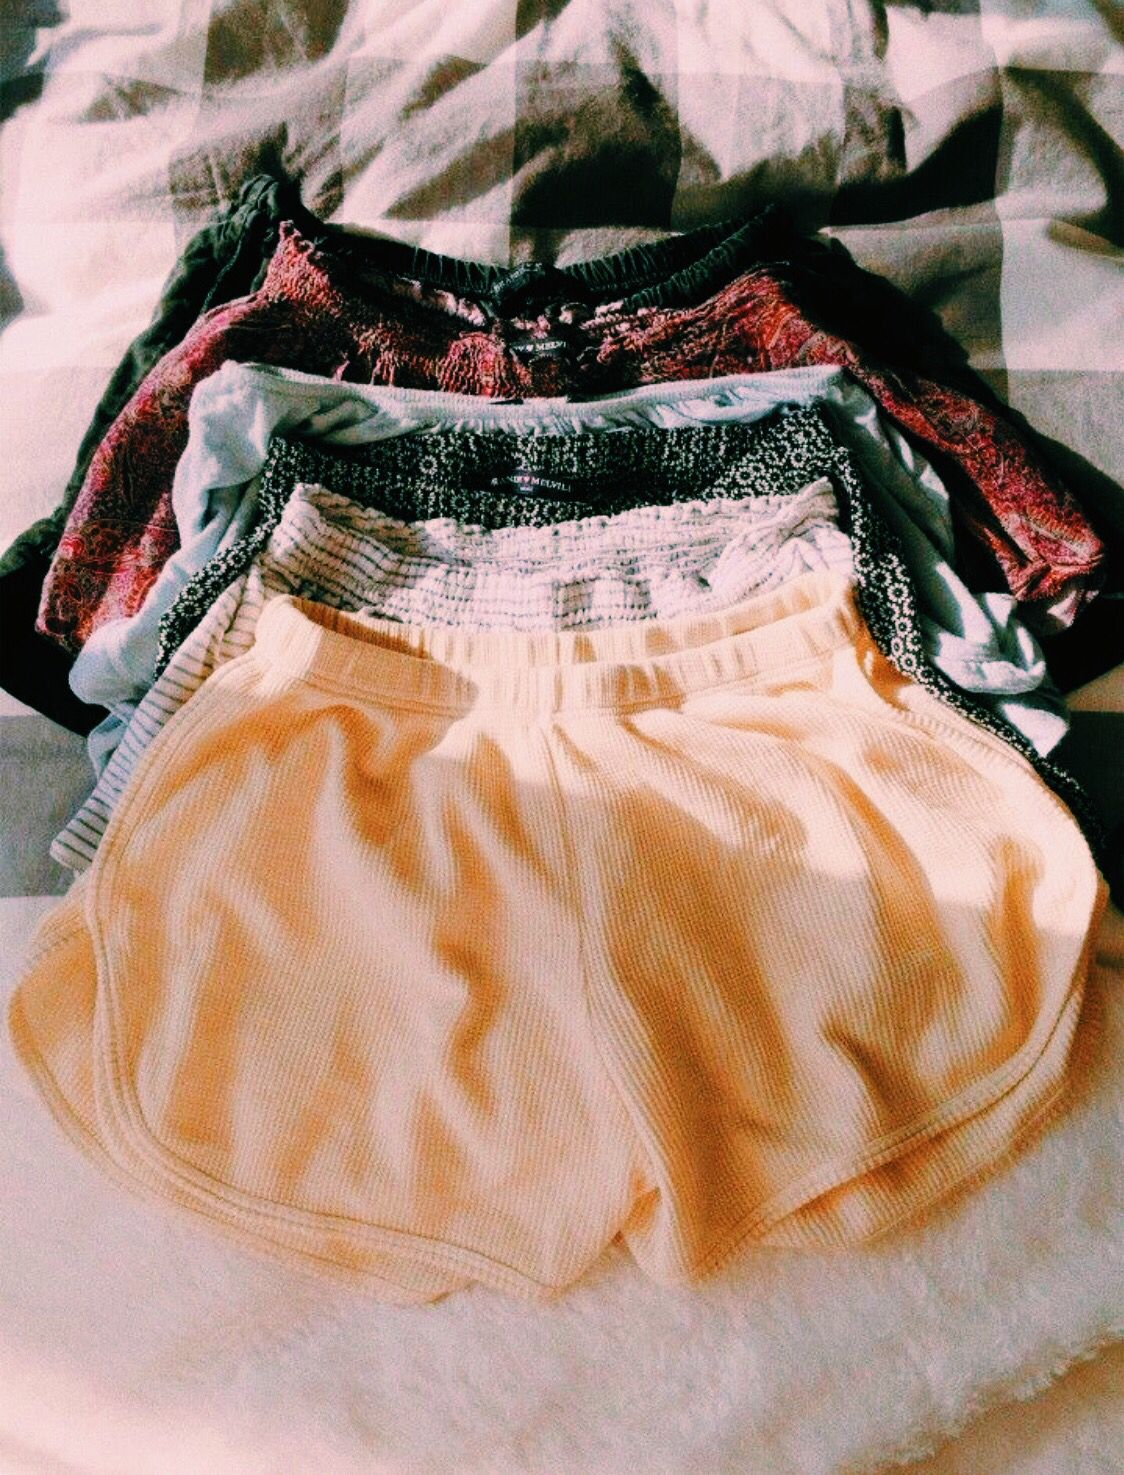 196983025c16 I want those shorts so F,in baddd 🤤🤤🤤💦💦💦 | cute pjs ✨ in 2019 ...